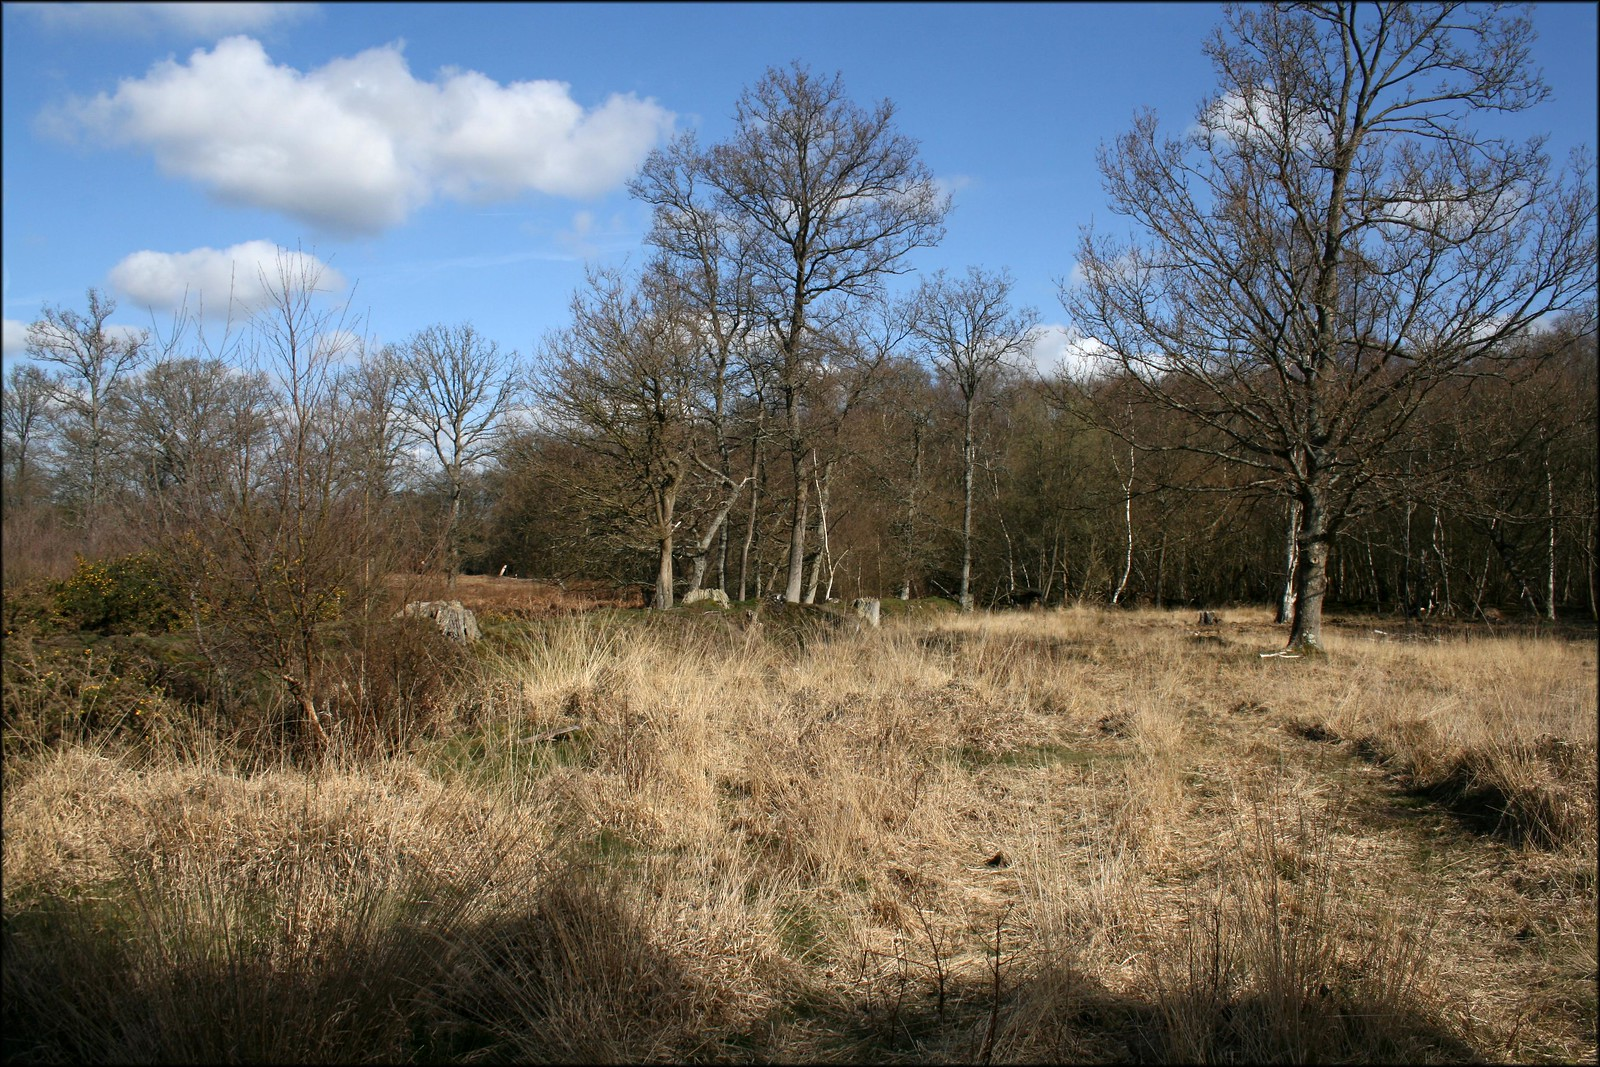 Bagmoor Common Near Milford, Surrey